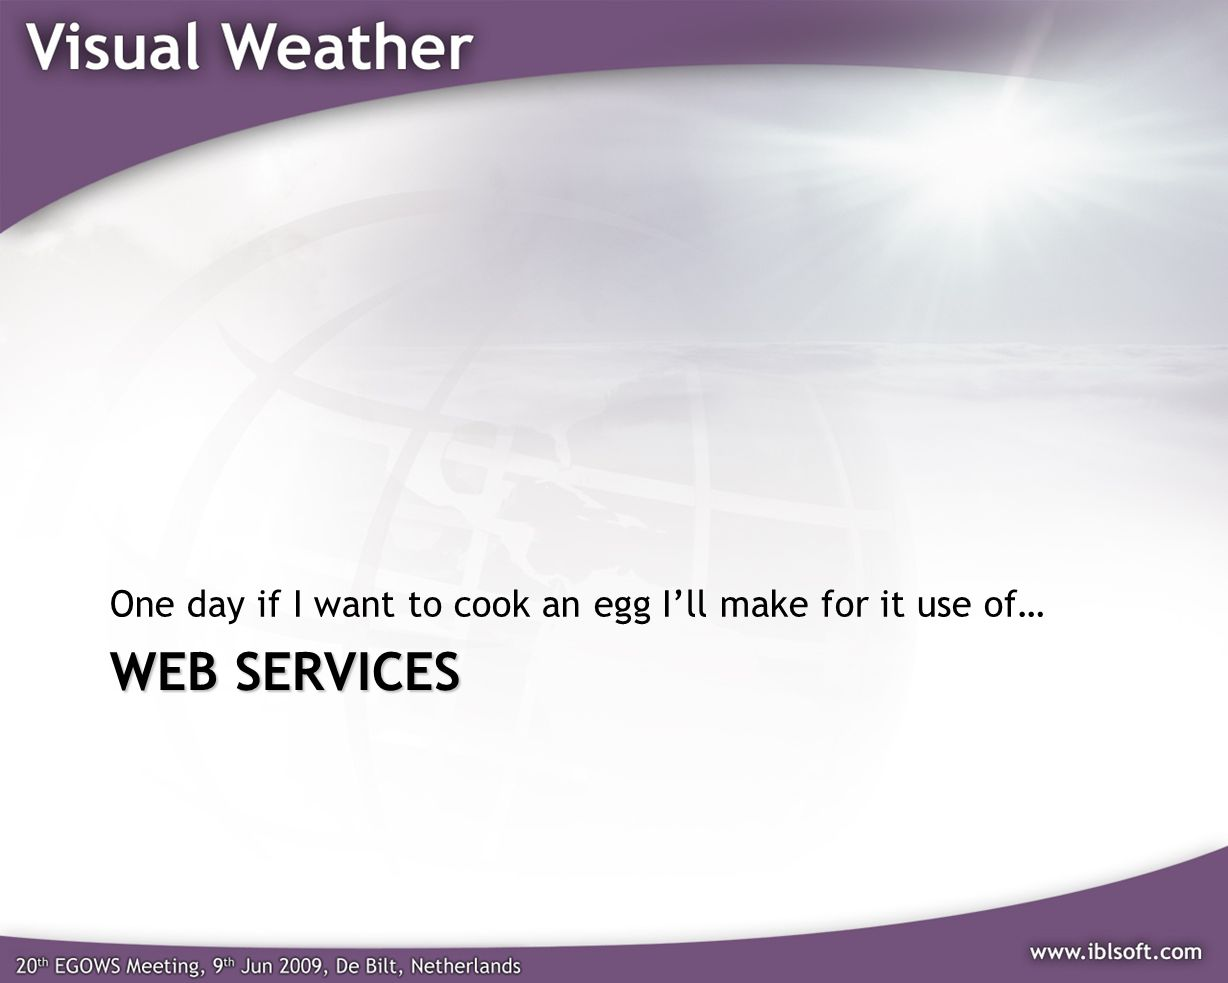 WEB SERVICES One day if I want to cook an egg Ill make for it use of…